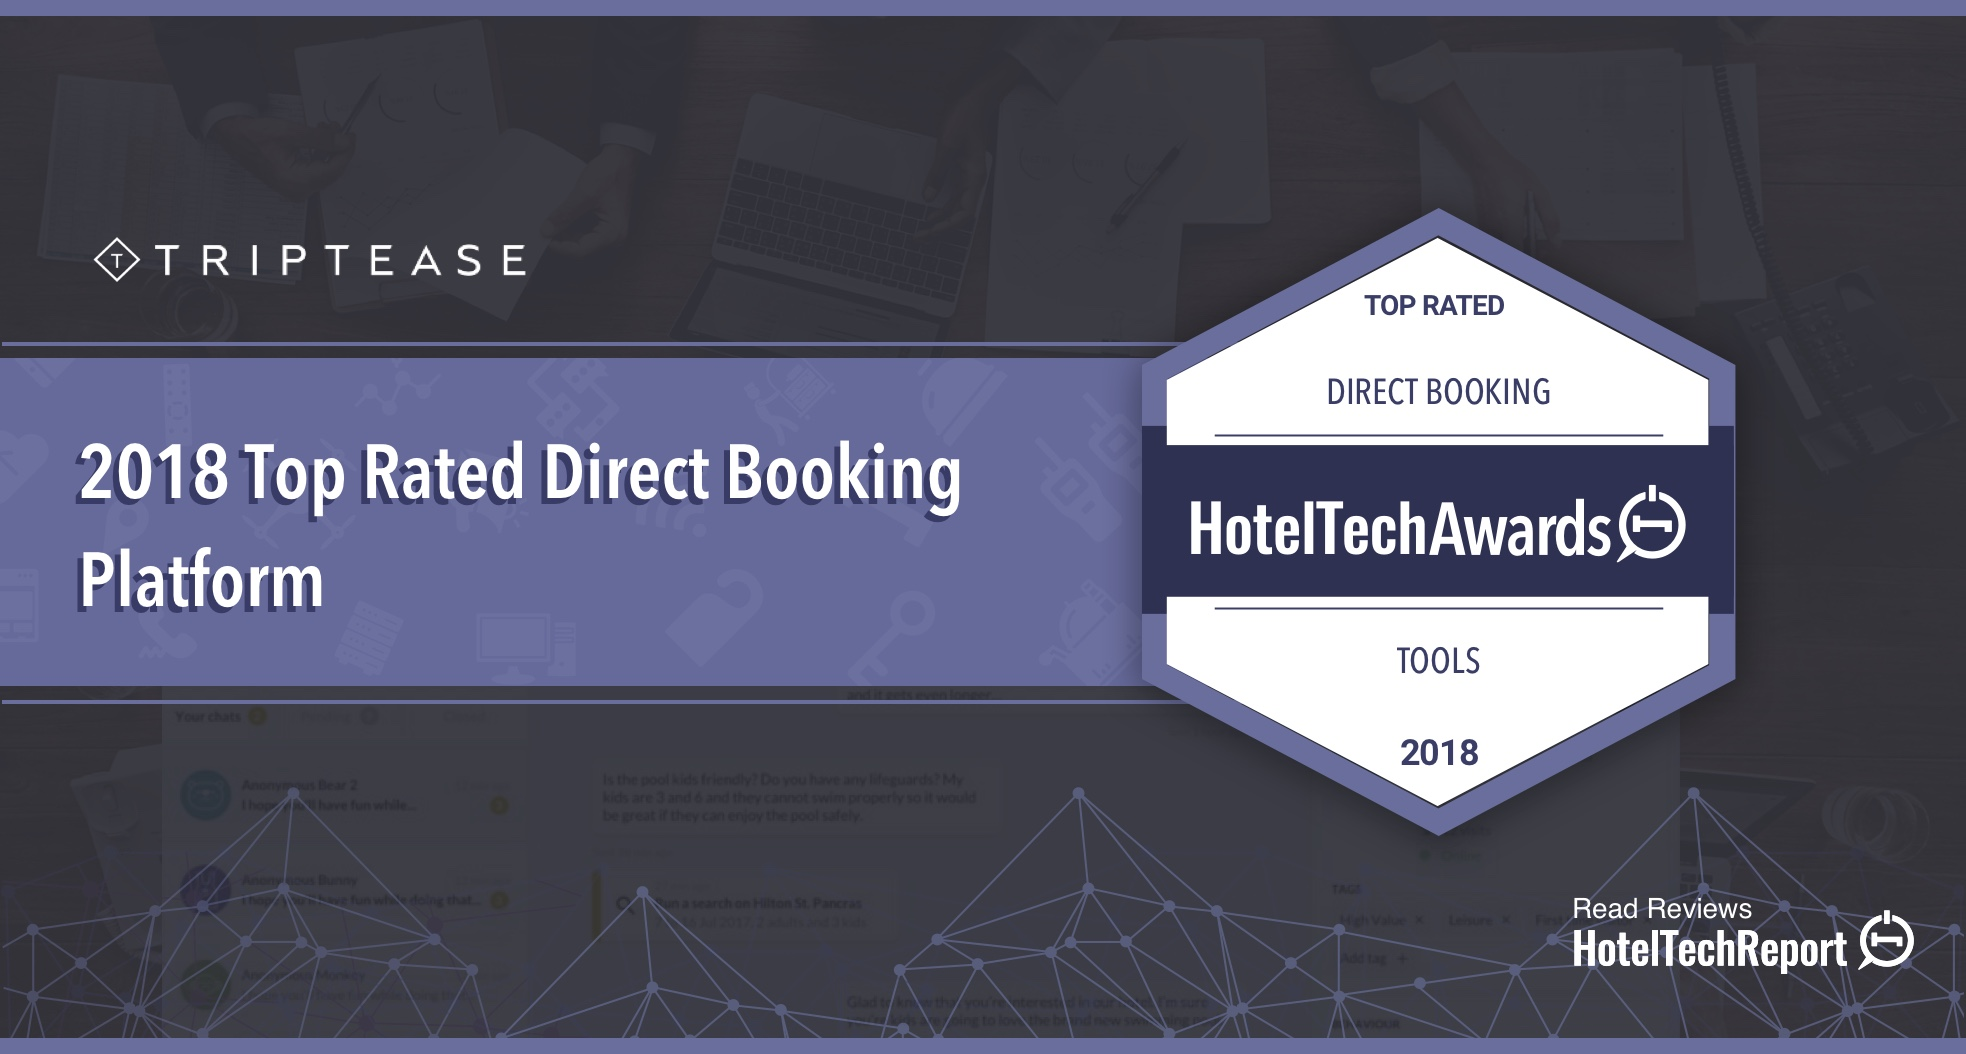 HotelTechAwards